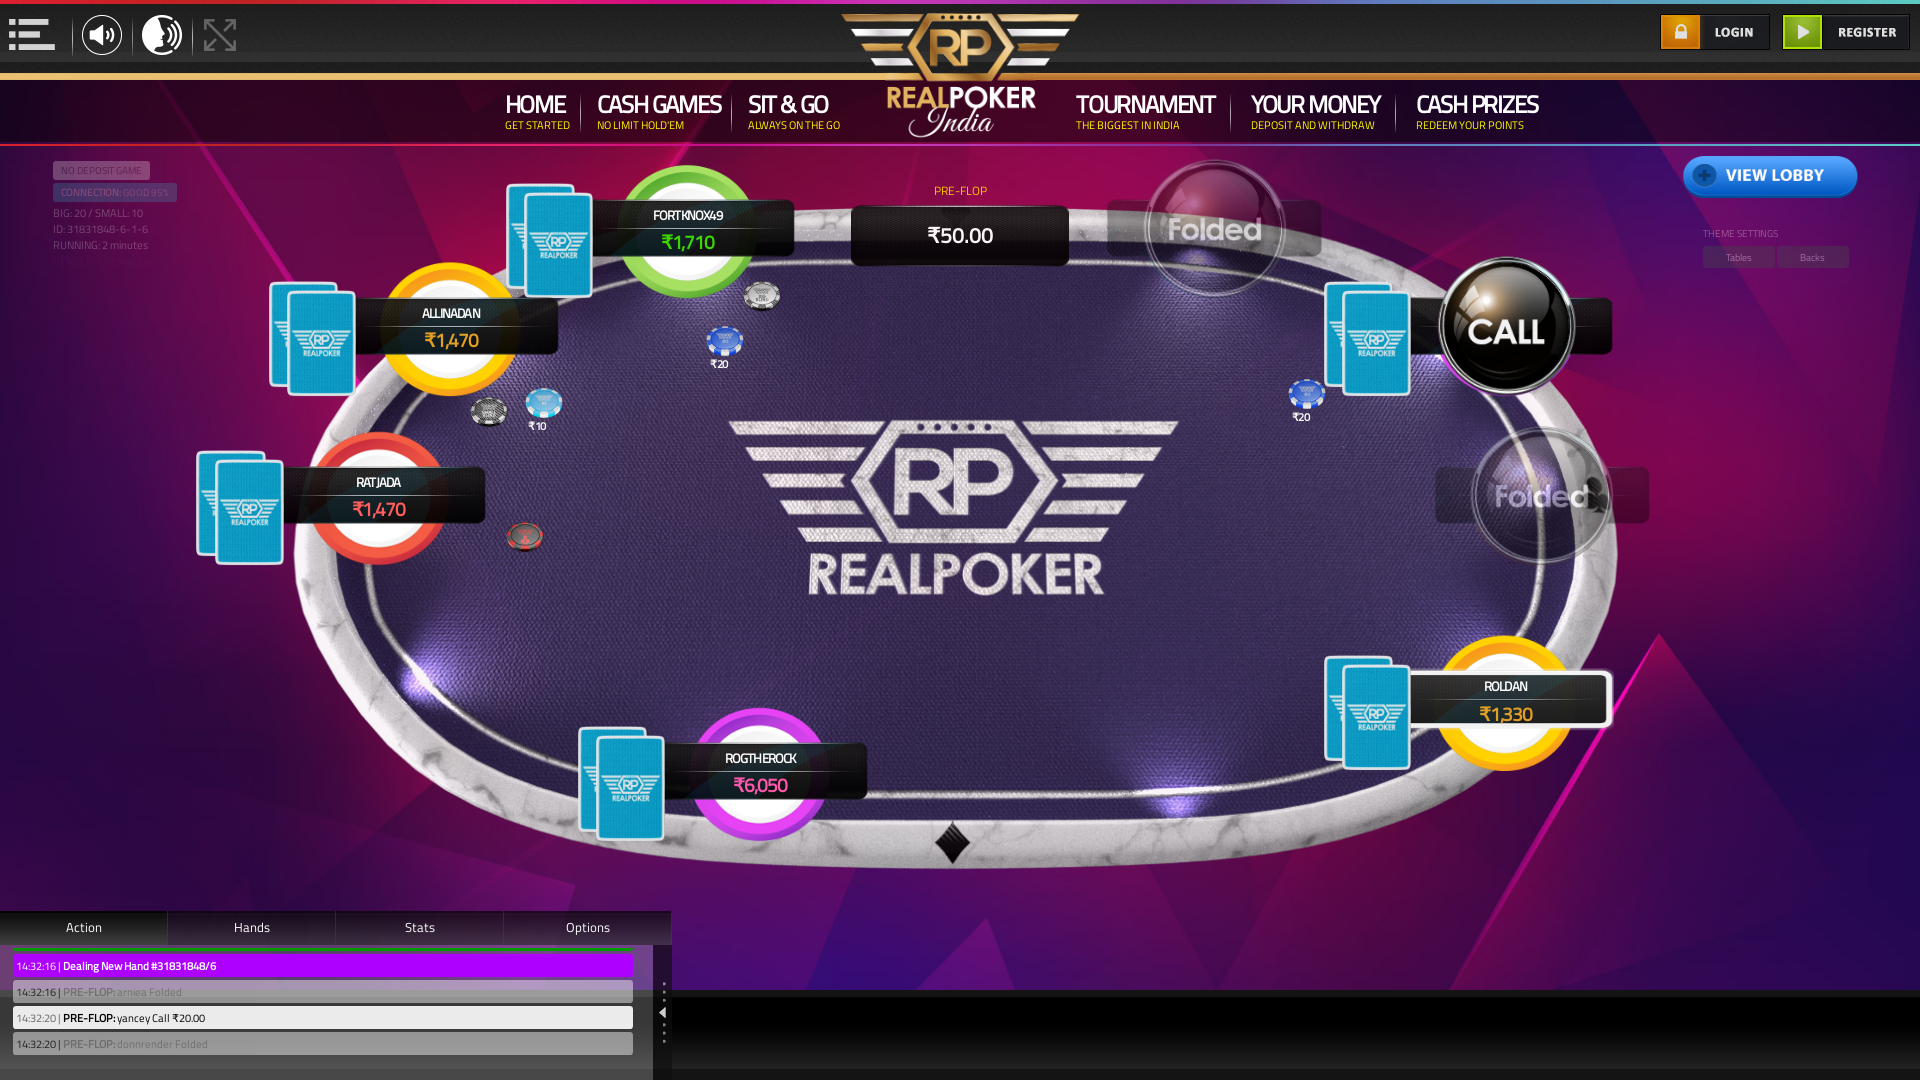 Real poker 10 player table in the 2nd minute of the match